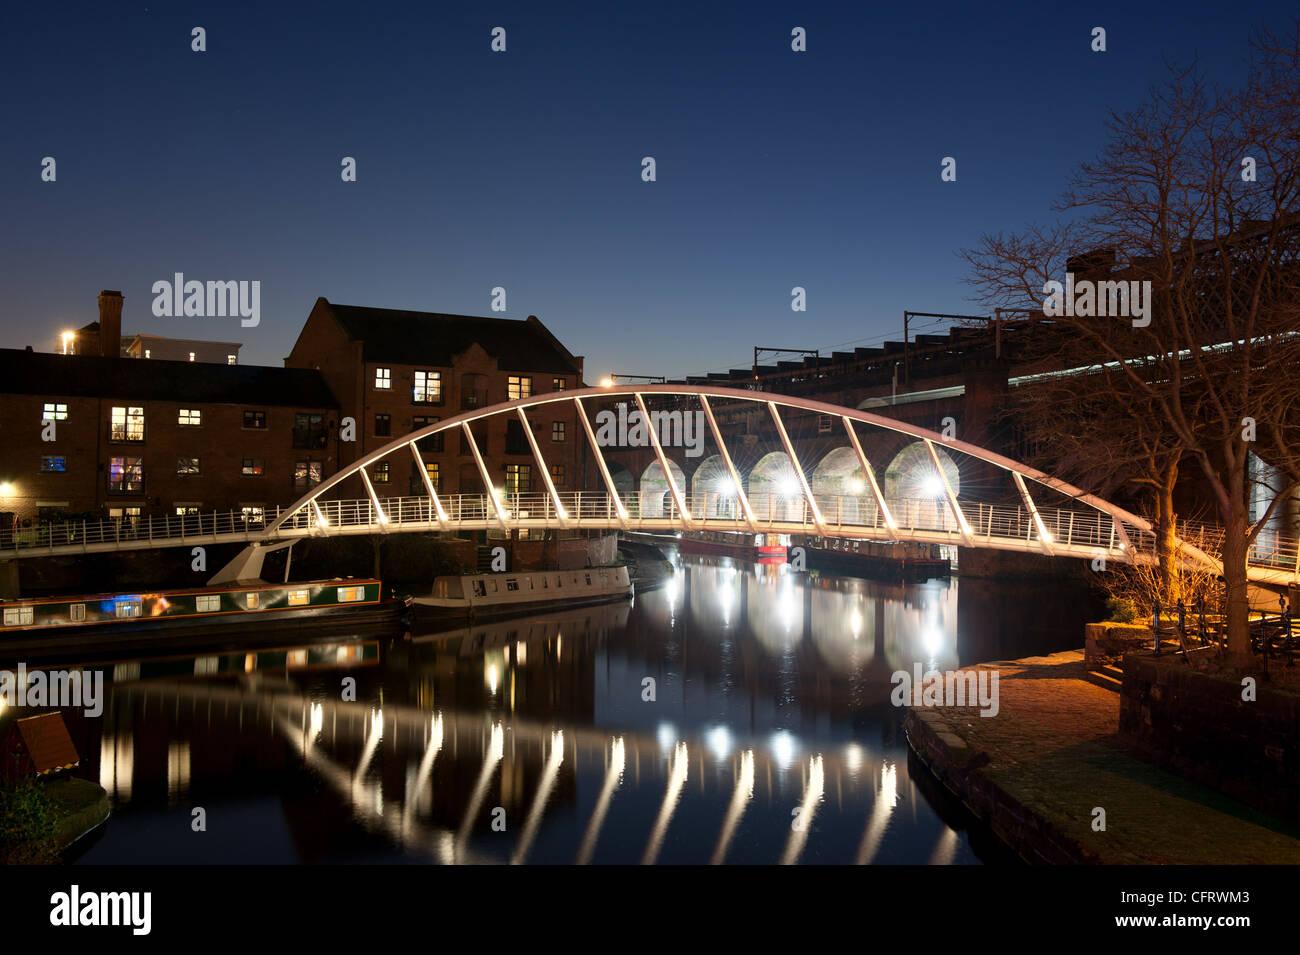 A night shot of a canal basin Castlefield, Manchester. - Stock Image